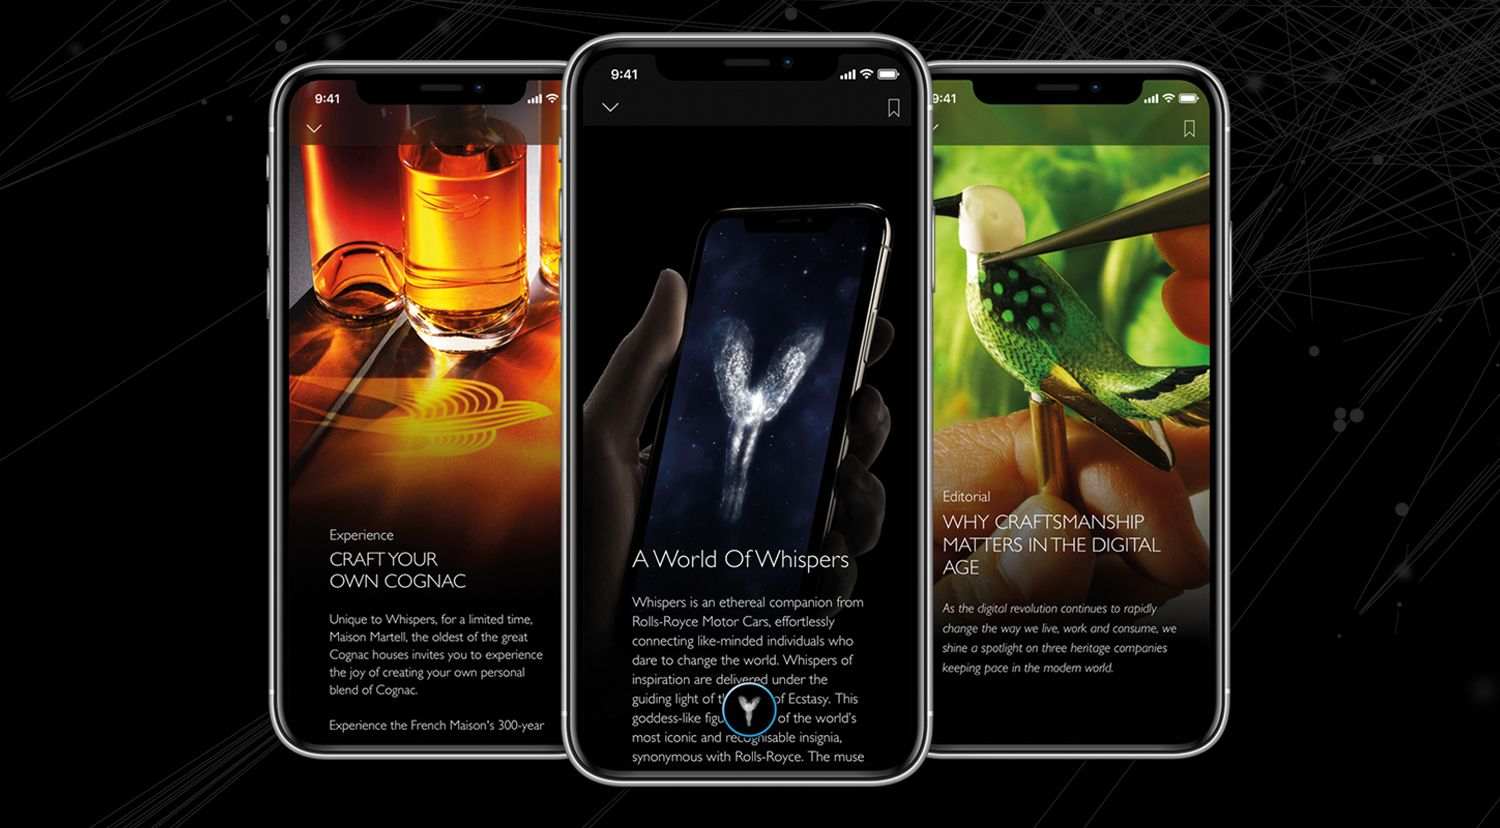 Rolls-Royce Launches The Most Exclusive App In The World